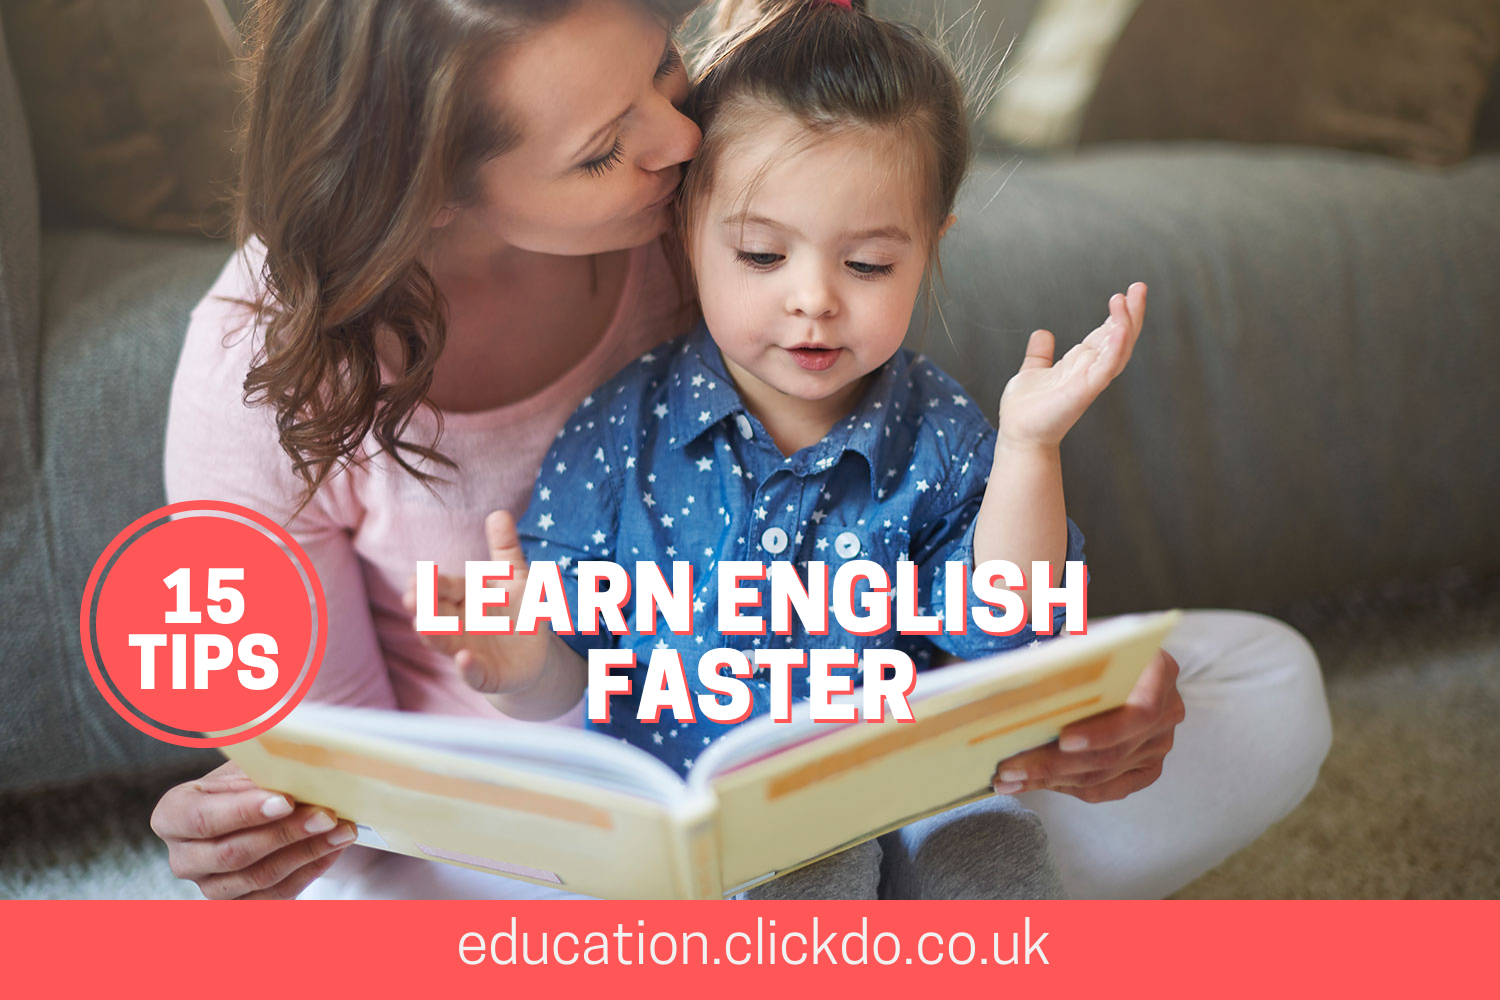 15 Tips to Learn English Faster as a Primary School Student